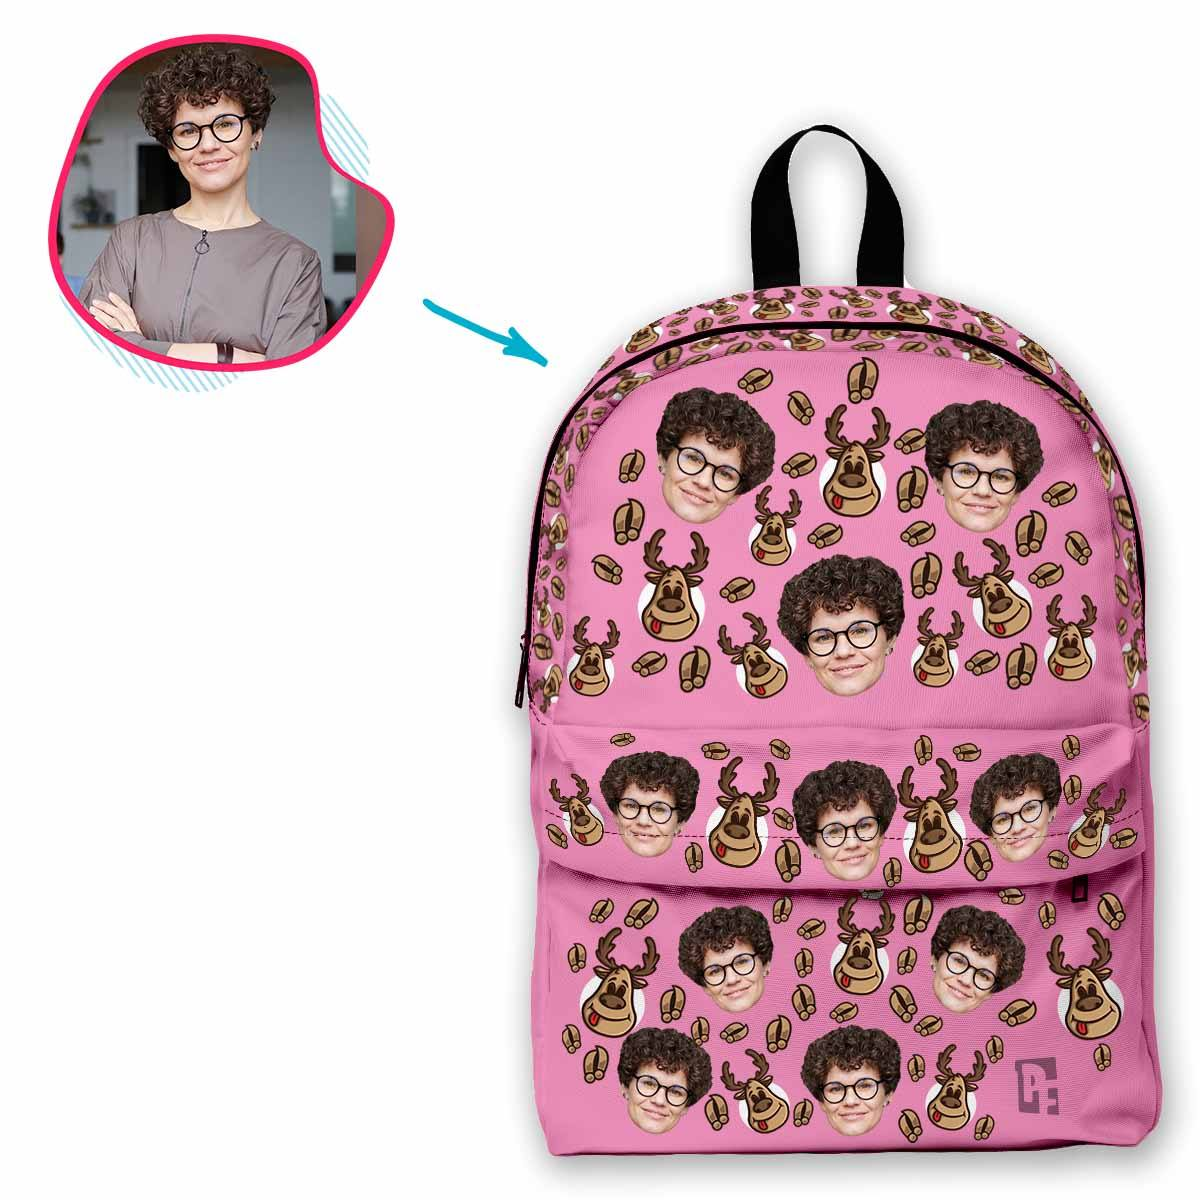 pink Deer Hunter classic backpack personalized with photo of face printed on it